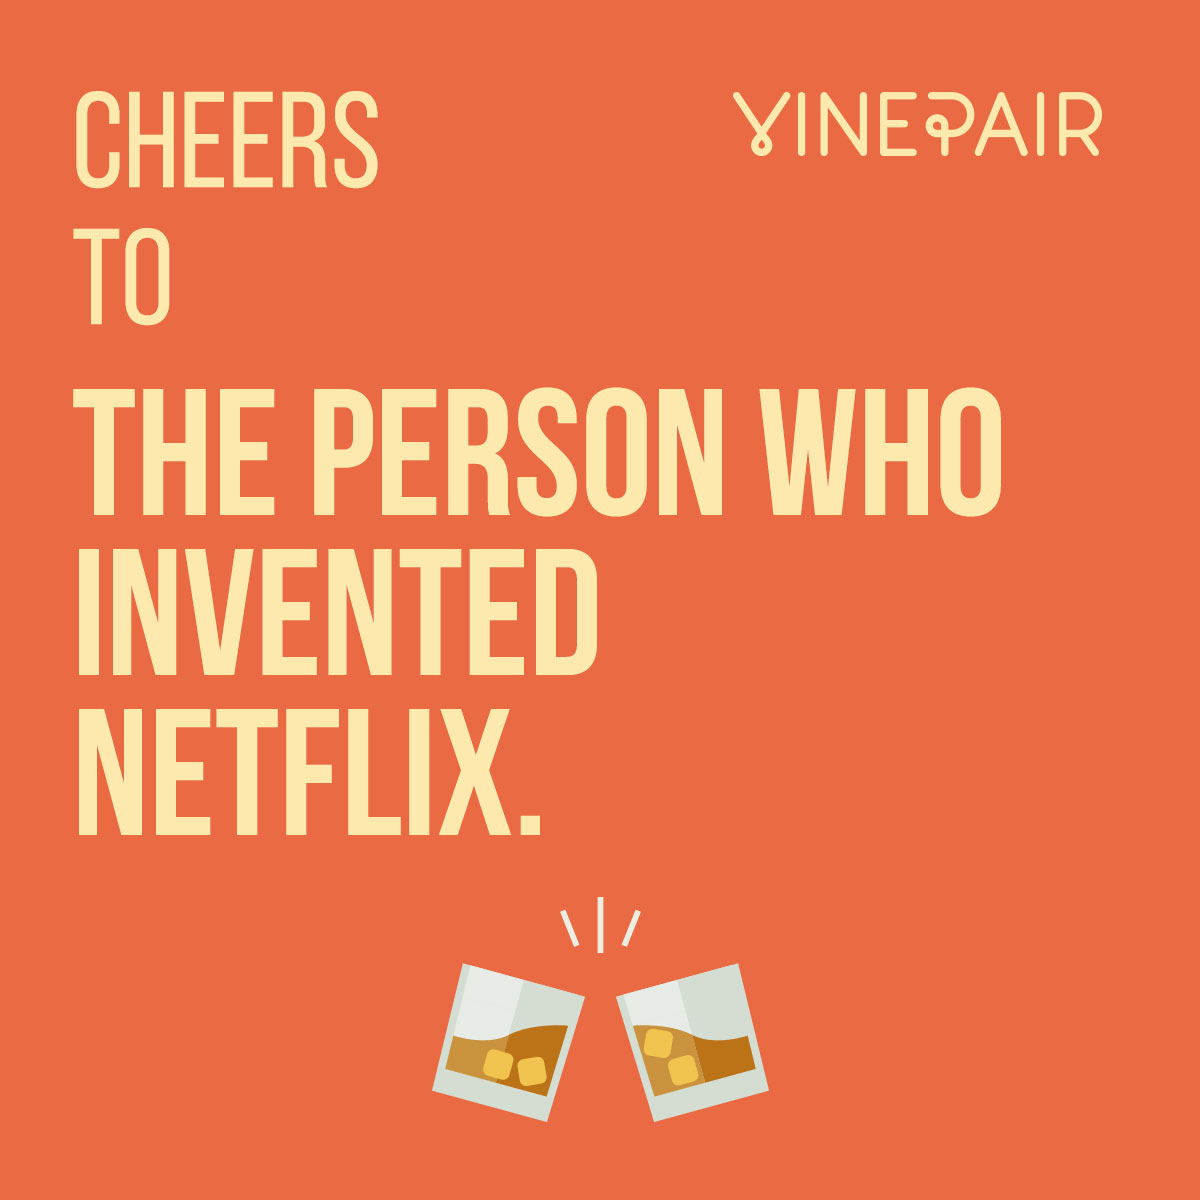 cheers_to_drink_34